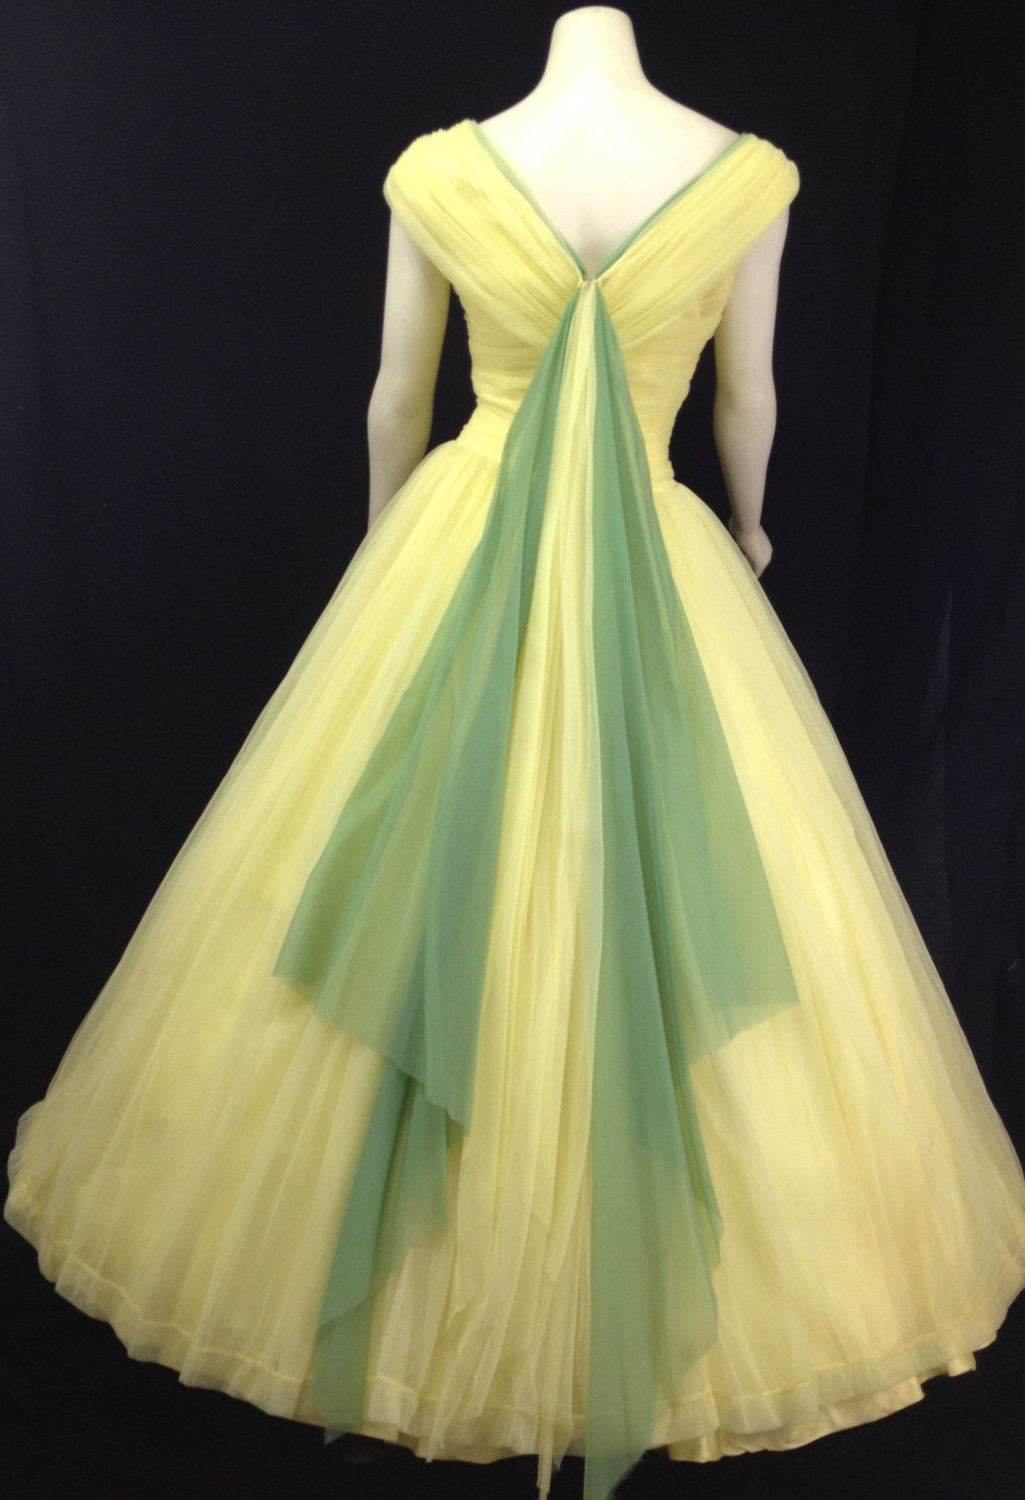 Vintage s ball gown yellow prom dress formal tulle full skirt